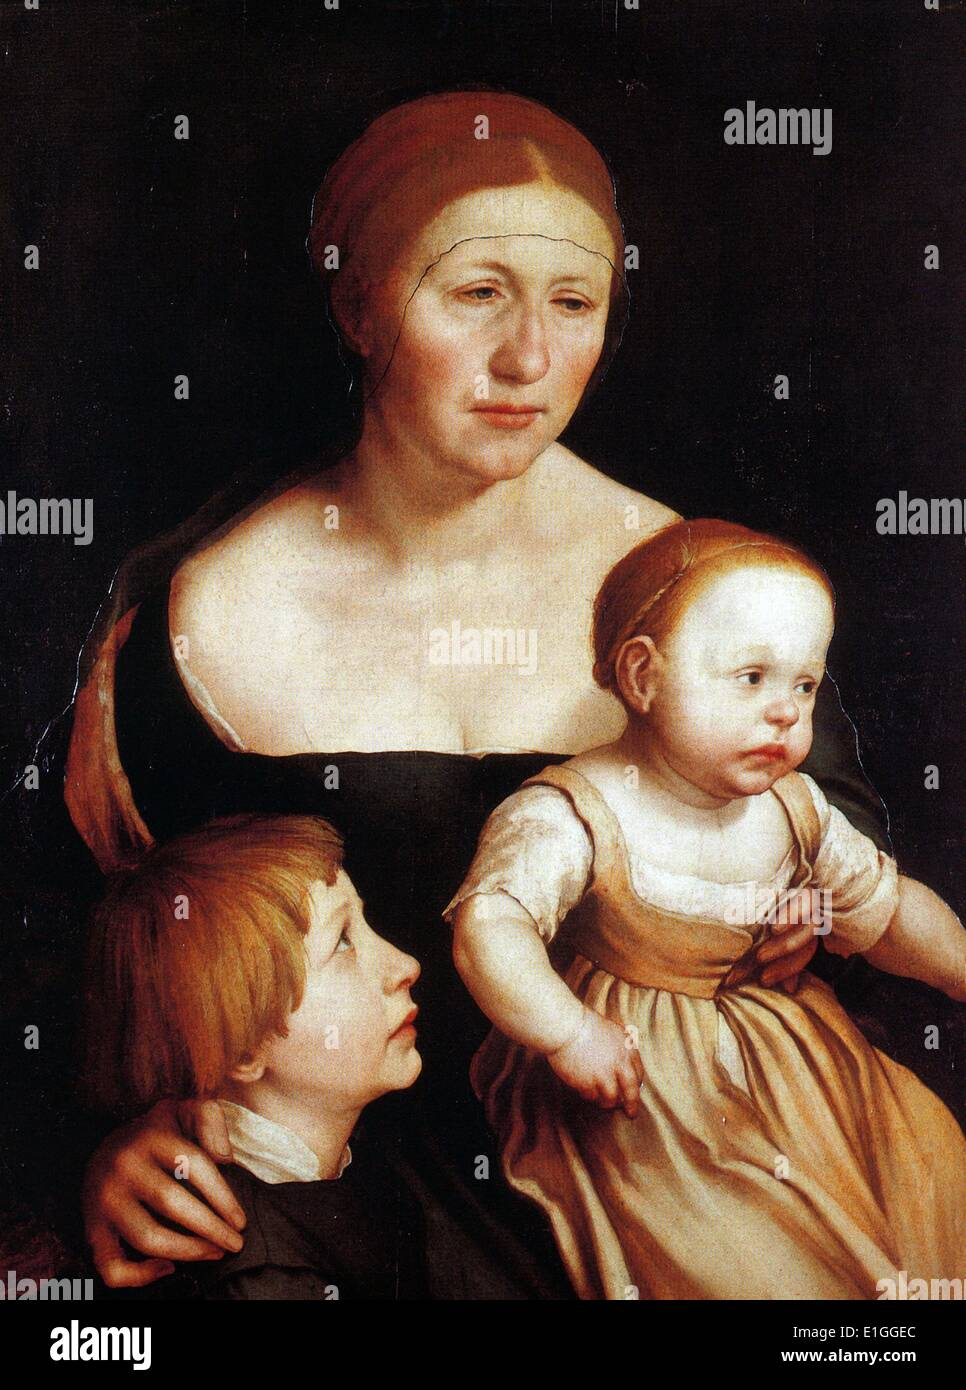 Hans Holbein the Younger (1498–1543) Charity (The Family of the Artist)c.1528 - Stock Image